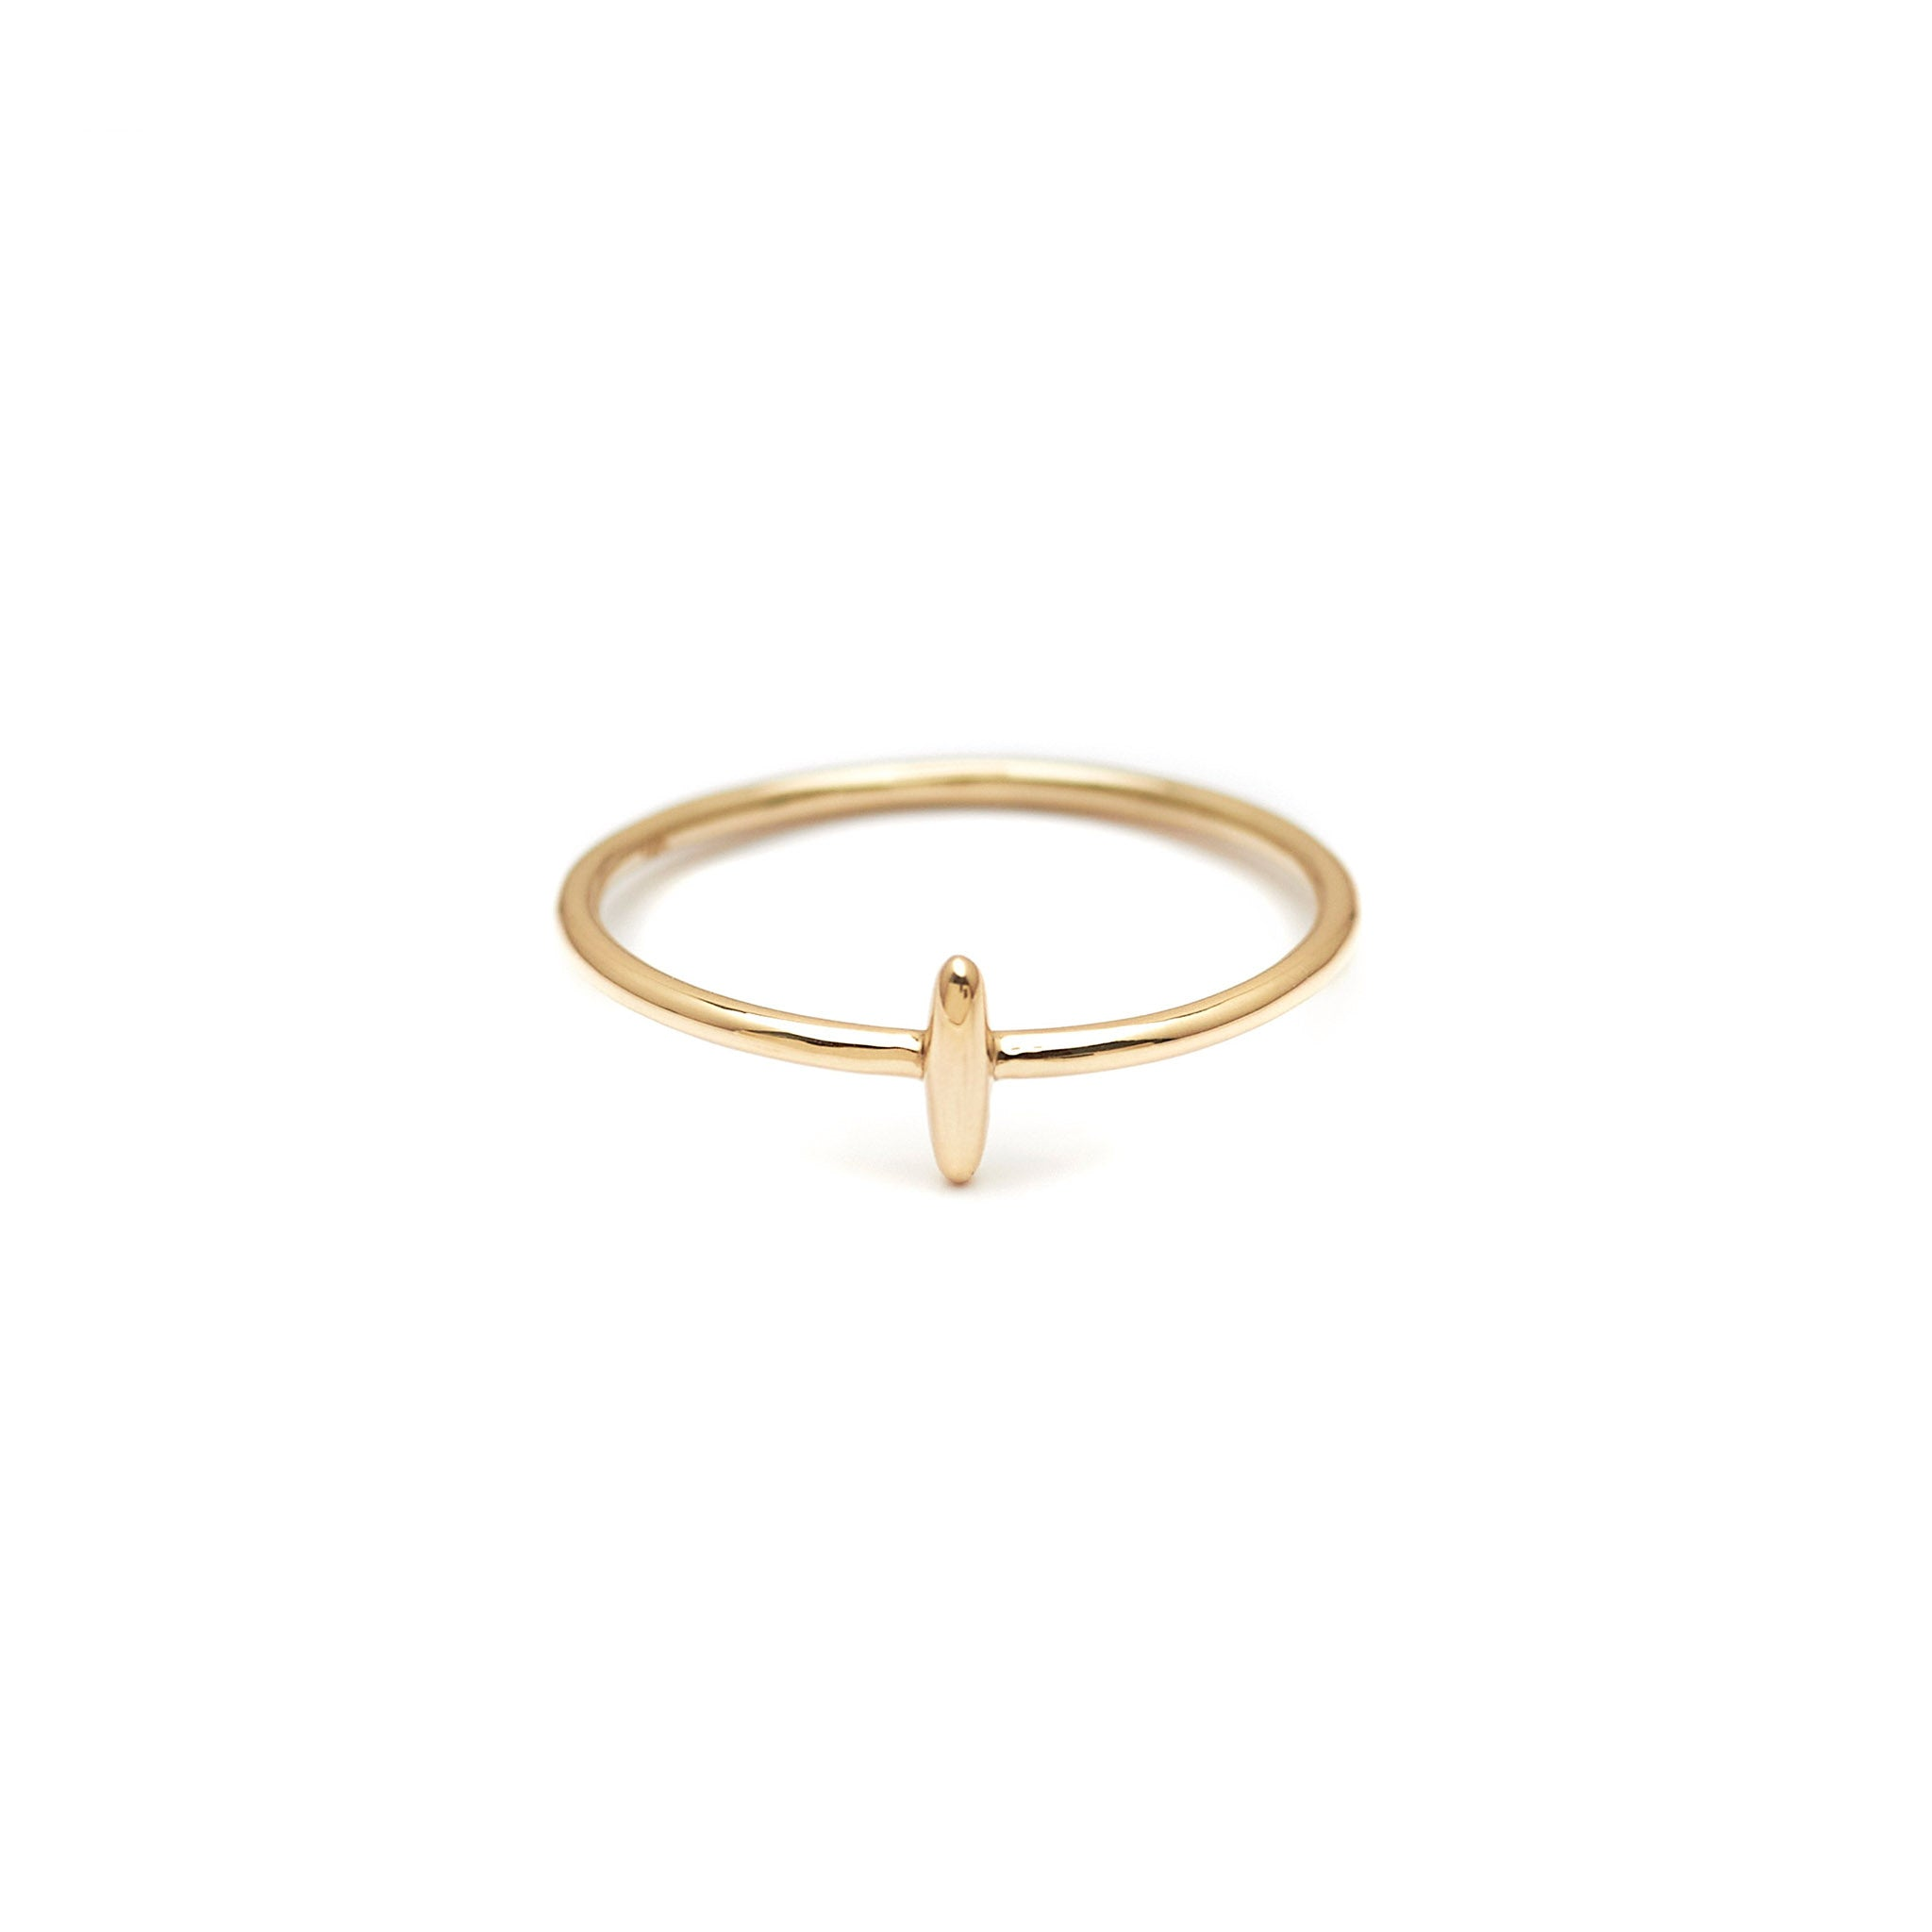 Minimalist solid 14k gold shoal ring. Every day fine jewelry